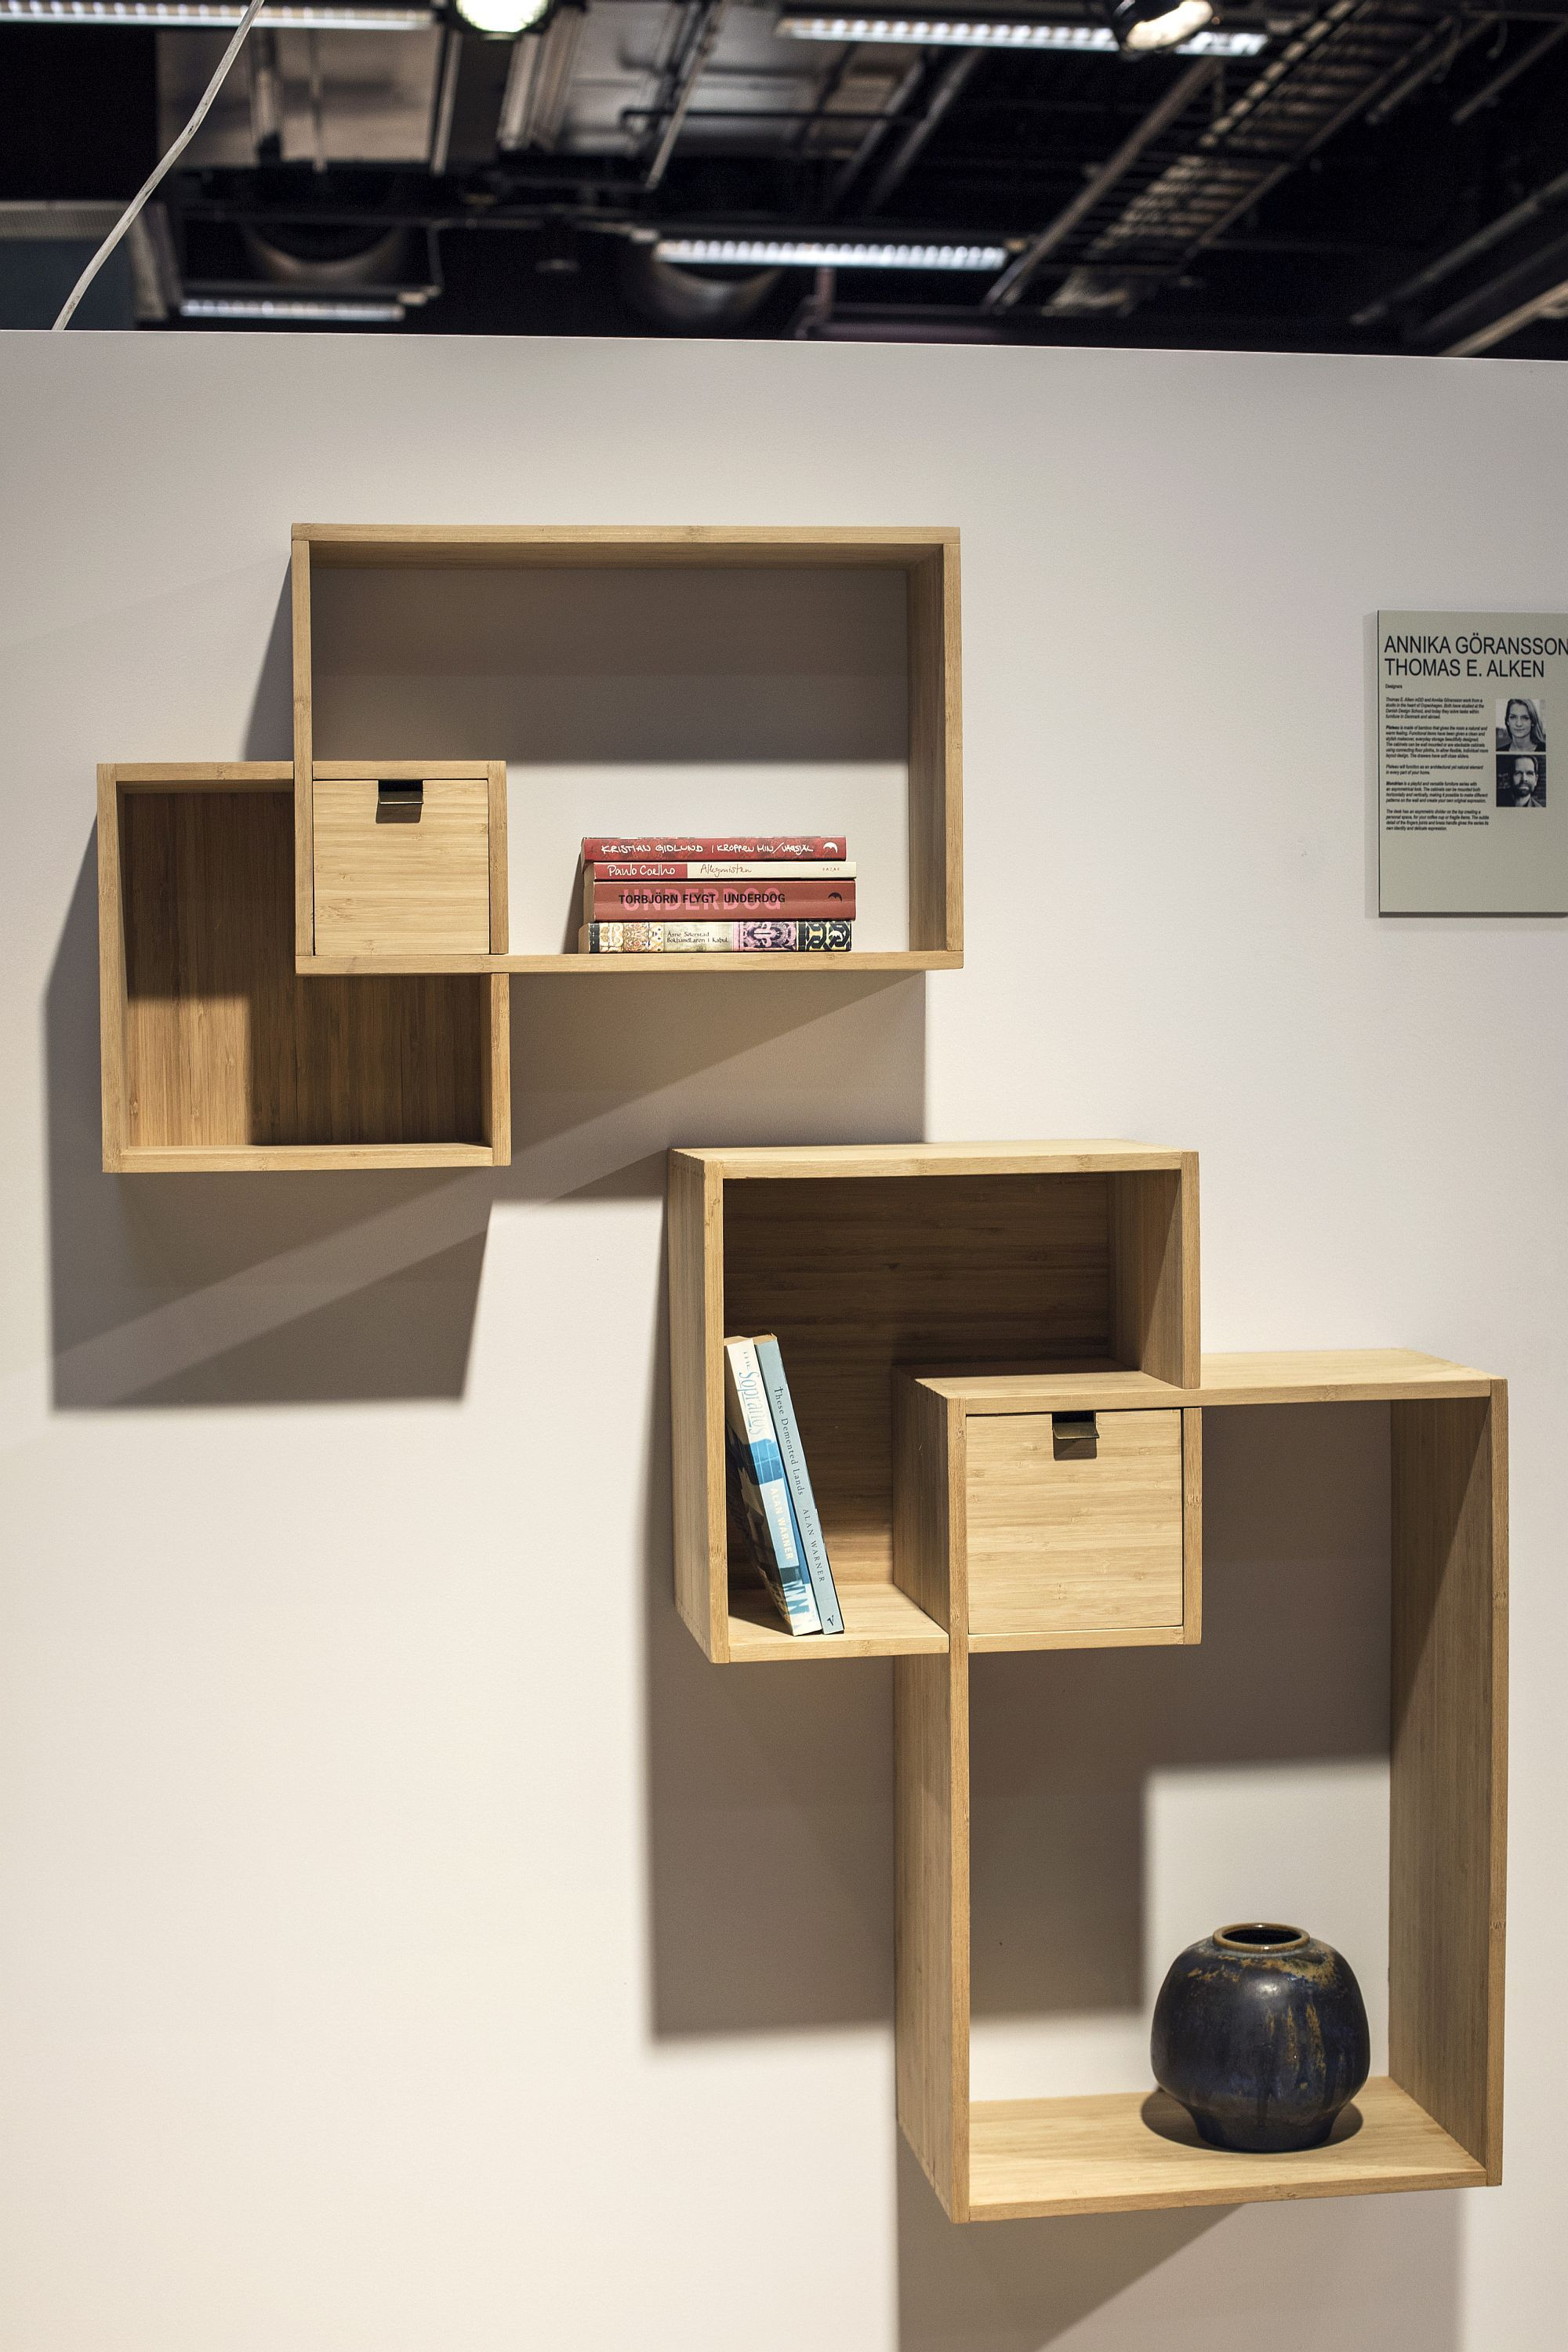 Mondrian Wall Shelf From Cinas 55 Wall Mounted Open Shelves Offering Space Savvy Modularity Shelves Open Shelving Wall Shelves